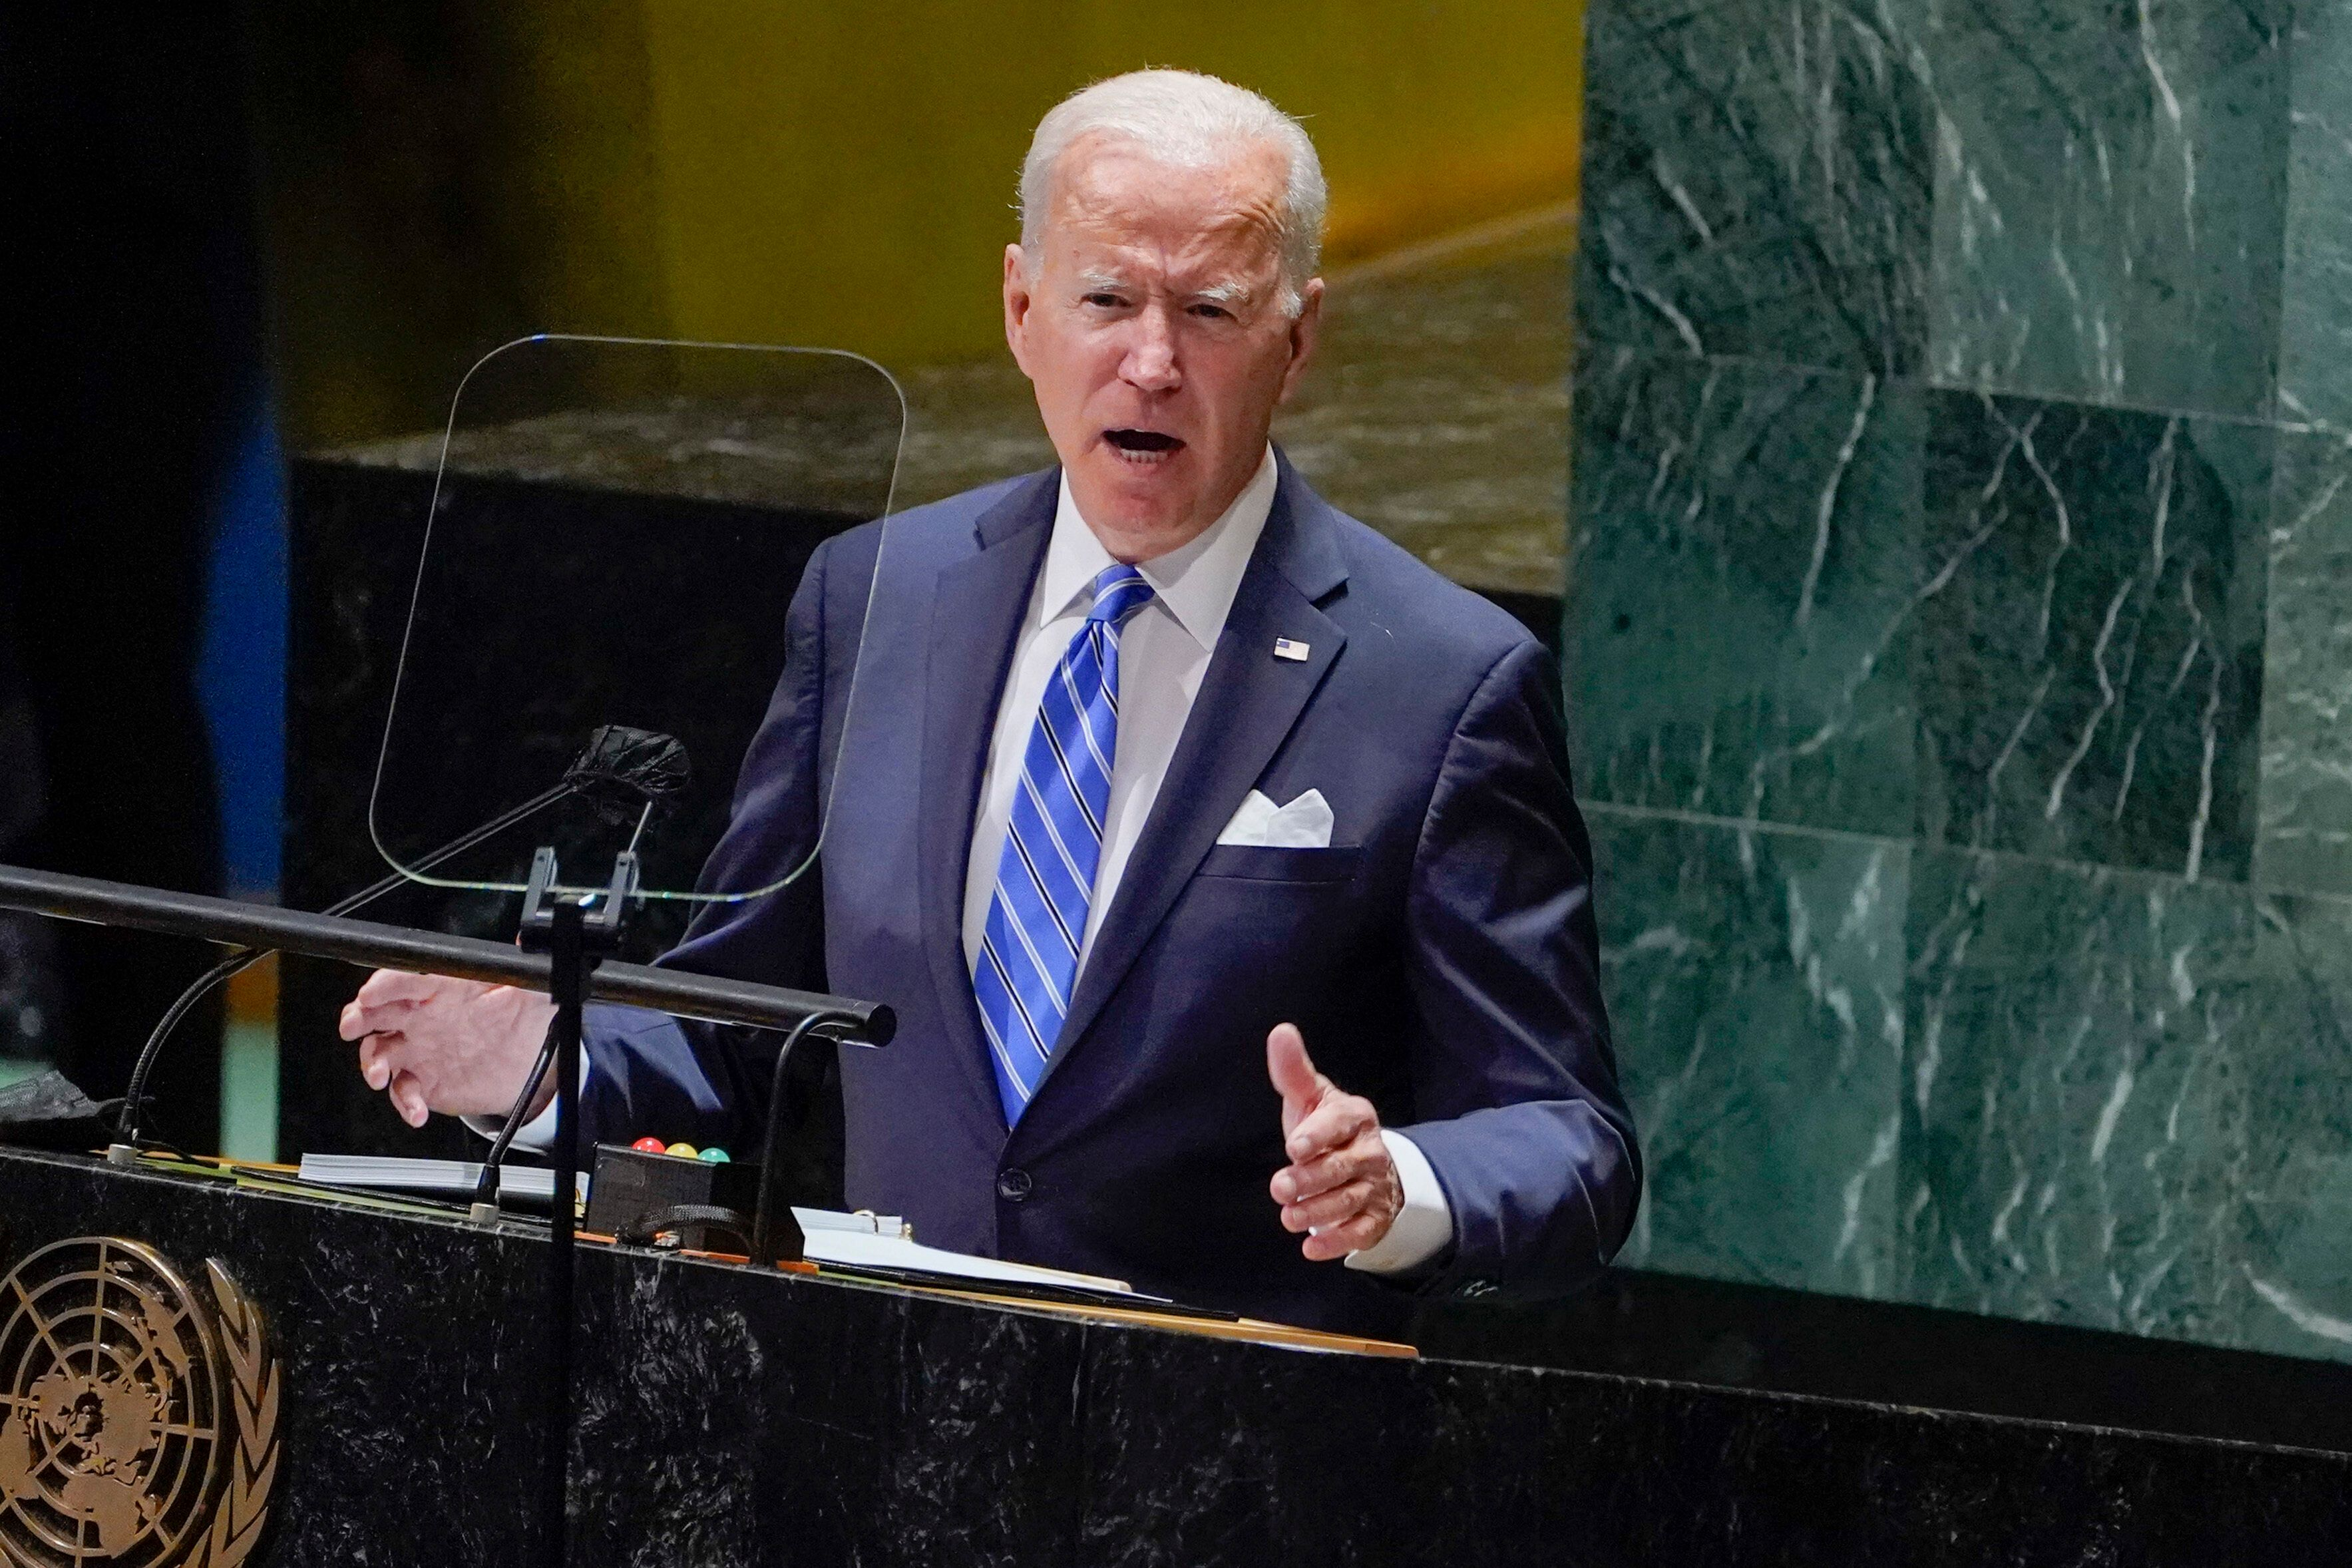 President Joe Biden delivers remarks to the 76th Session of the United Nations General Assembly, Tuesday, Sept. 21, 2021, in